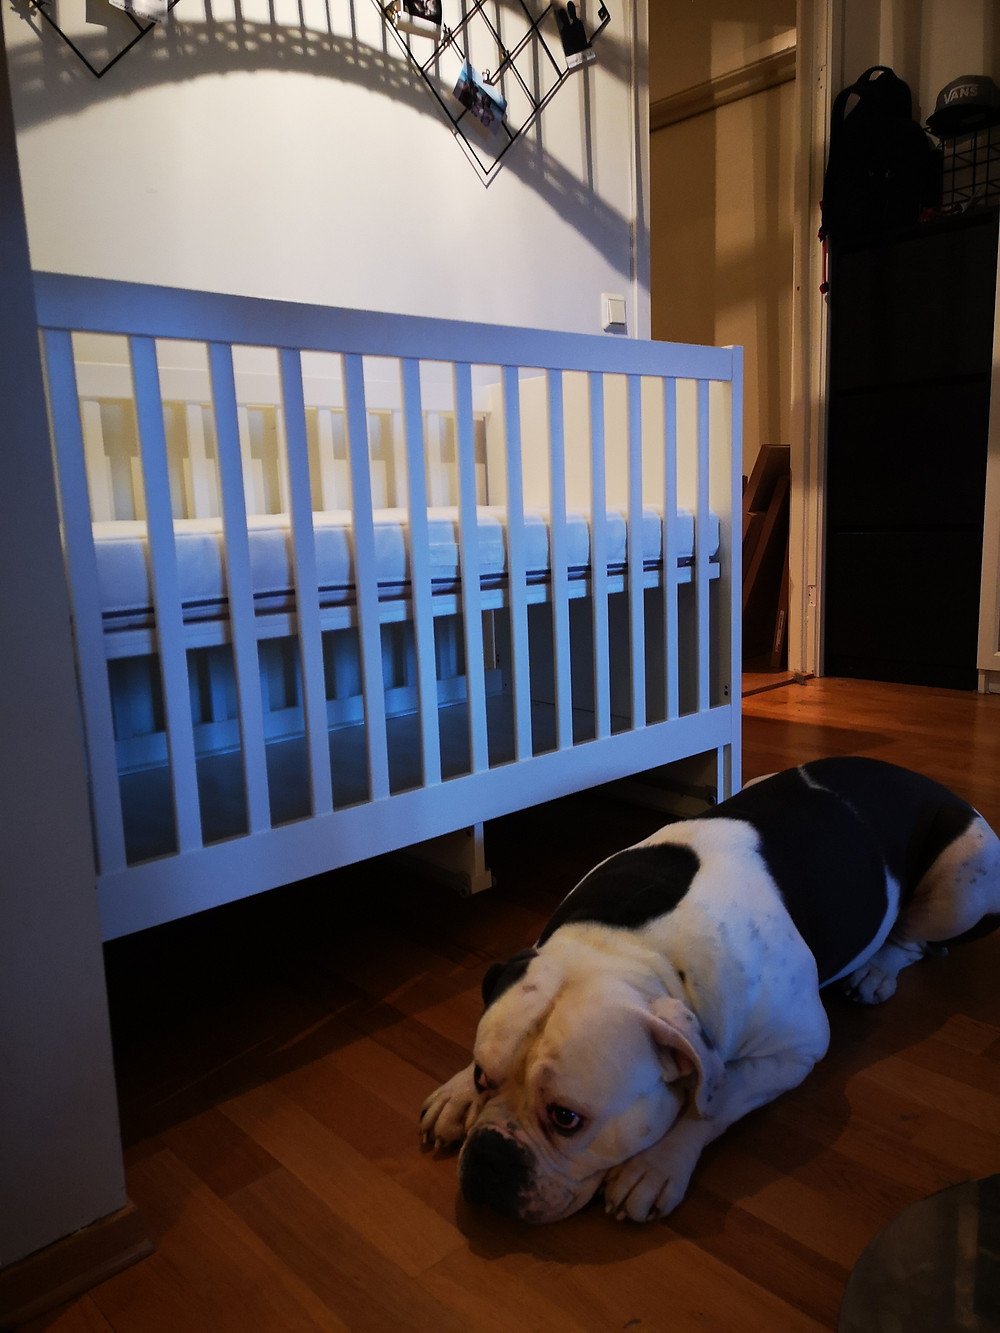 Blaze helping in the process of building the Stuva crib from Ikea